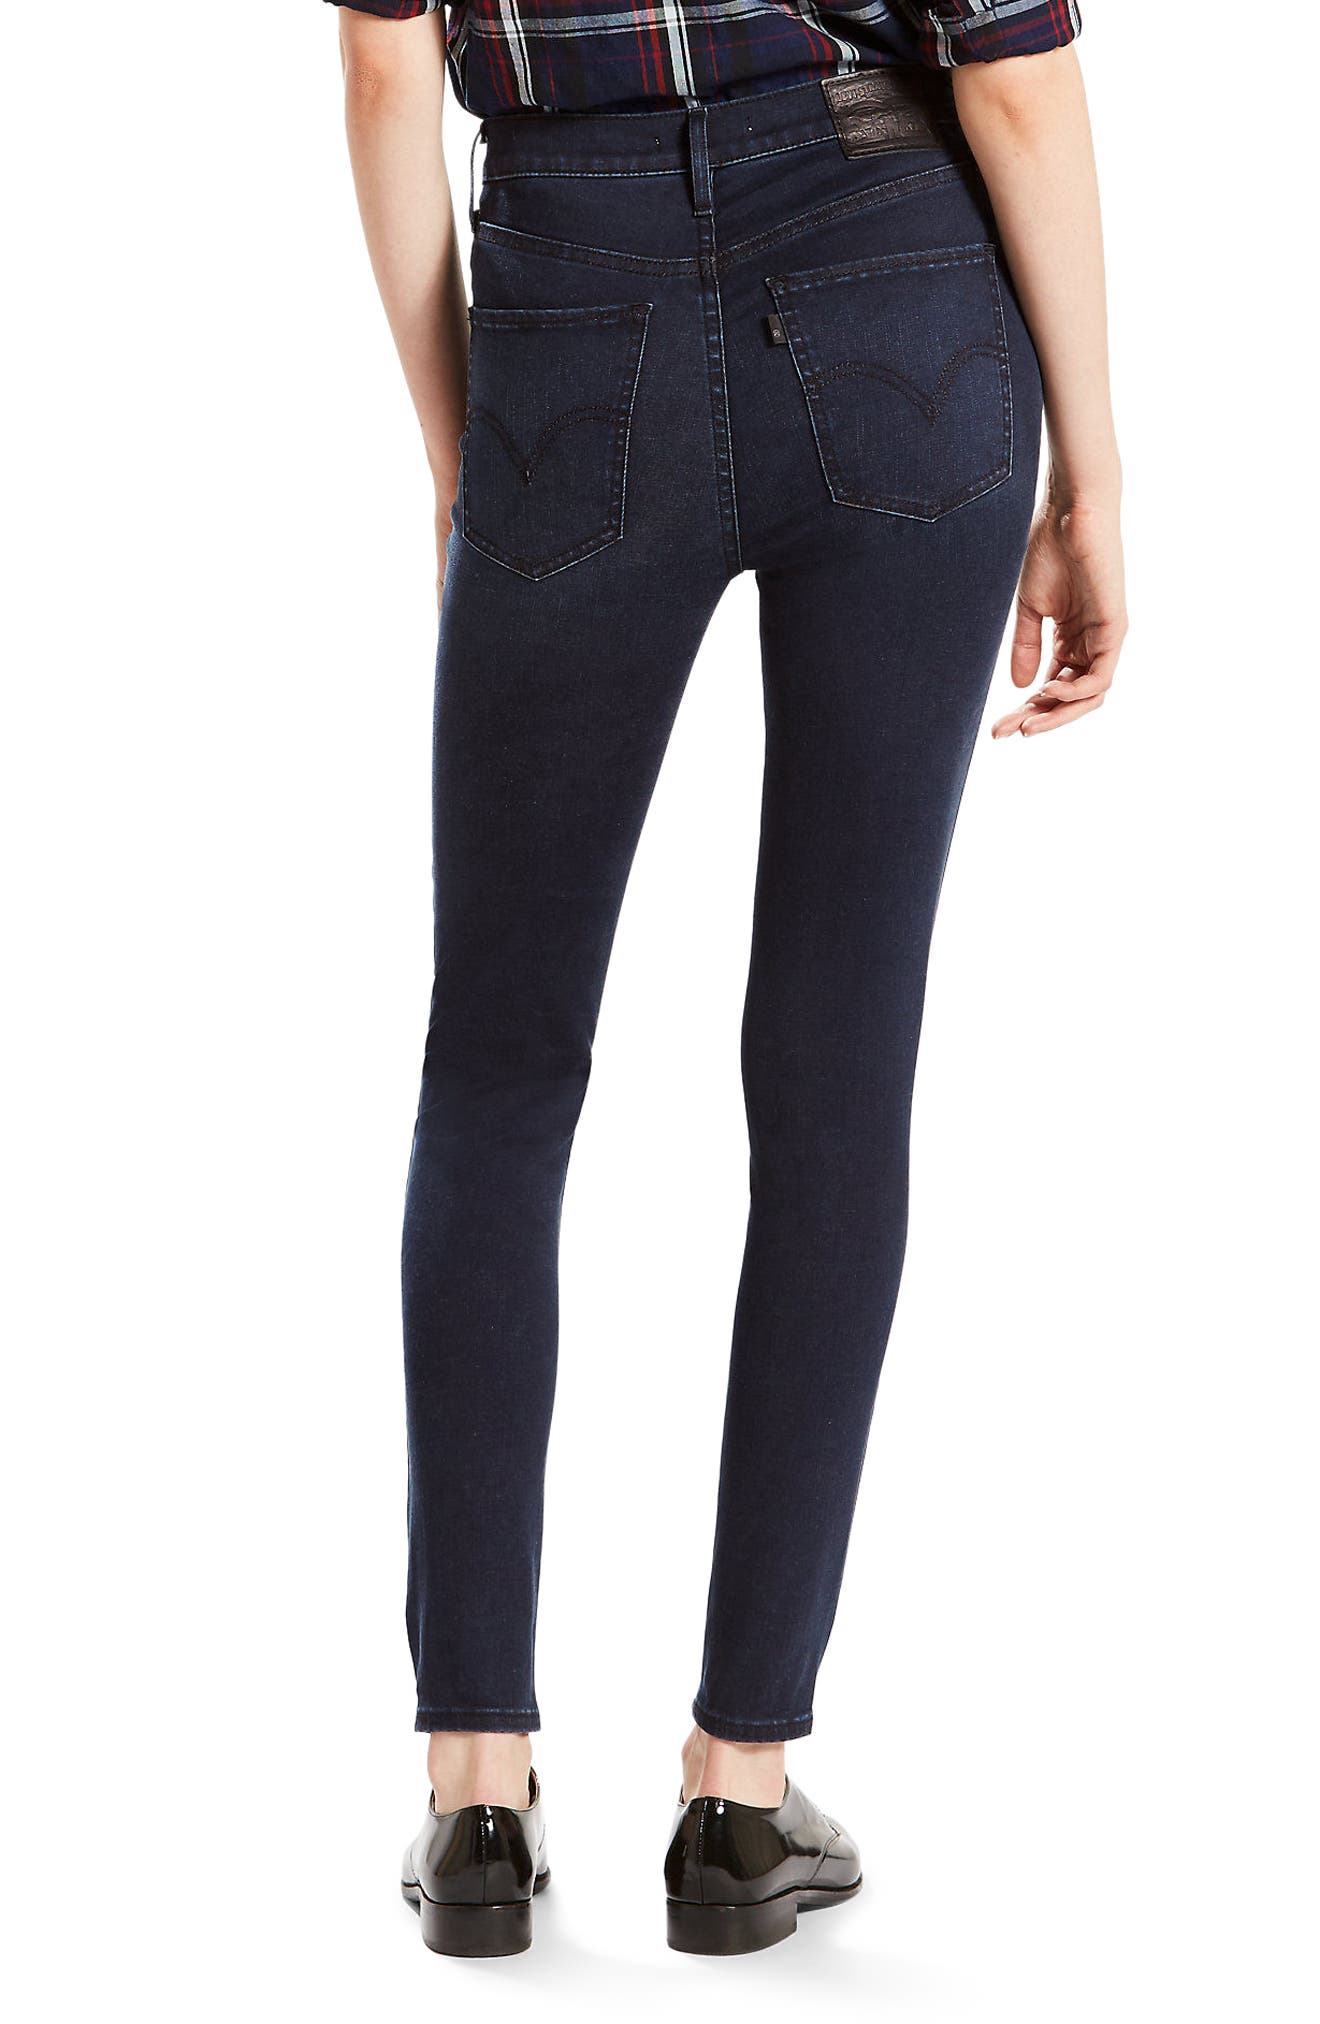 Mile High High Waist Super Skinny Jeans,                             Alternate thumbnail 2, color,                             420